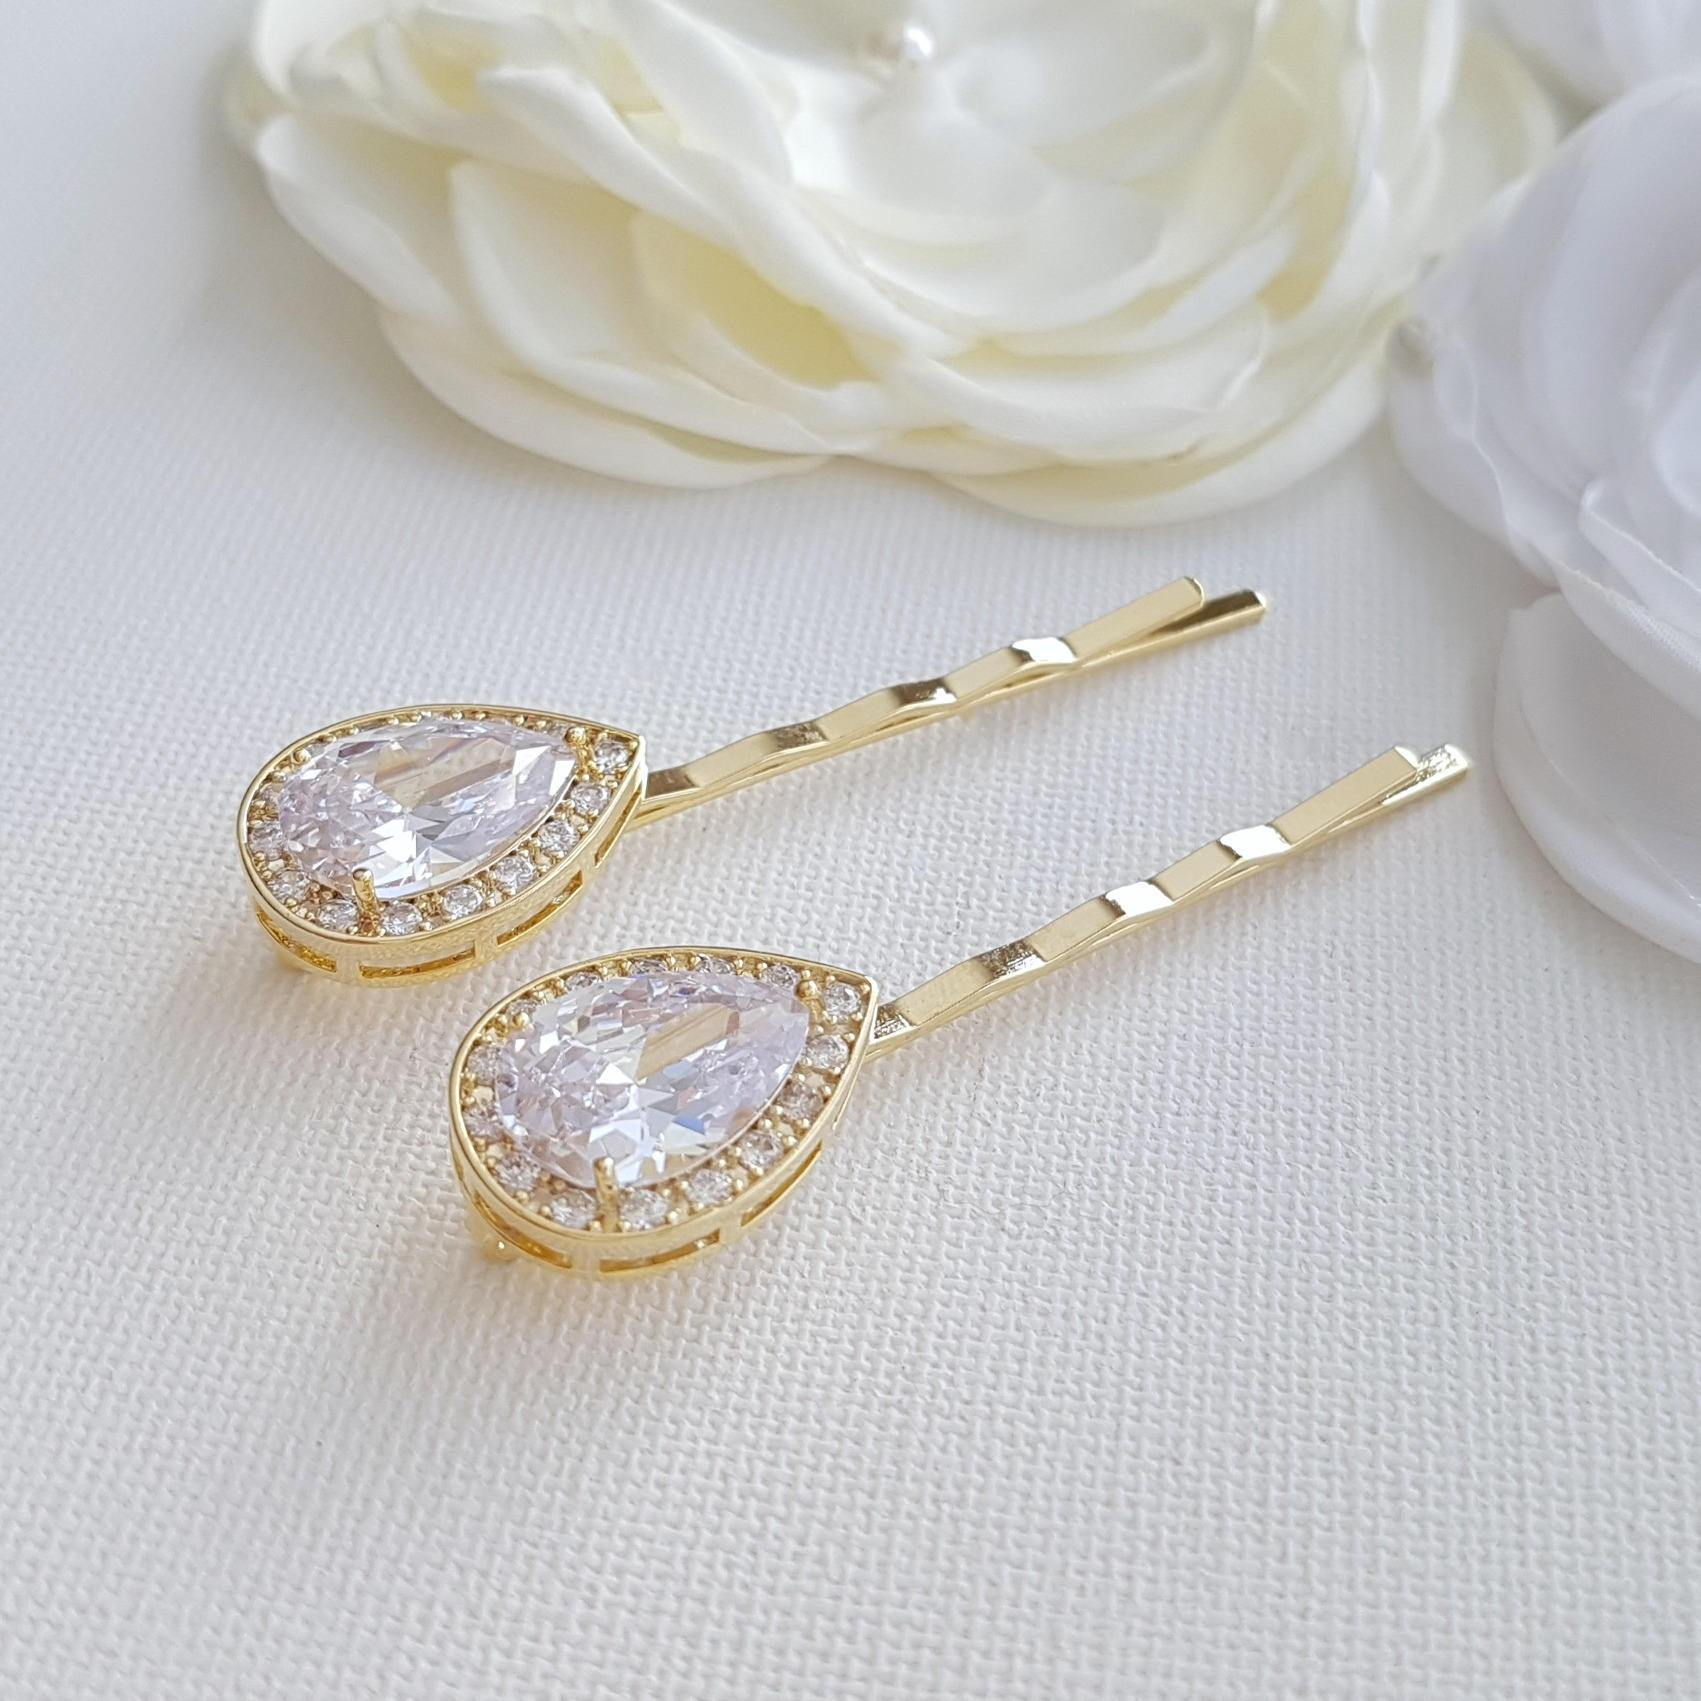 Gold Bridal Hair Pins- Evelyn